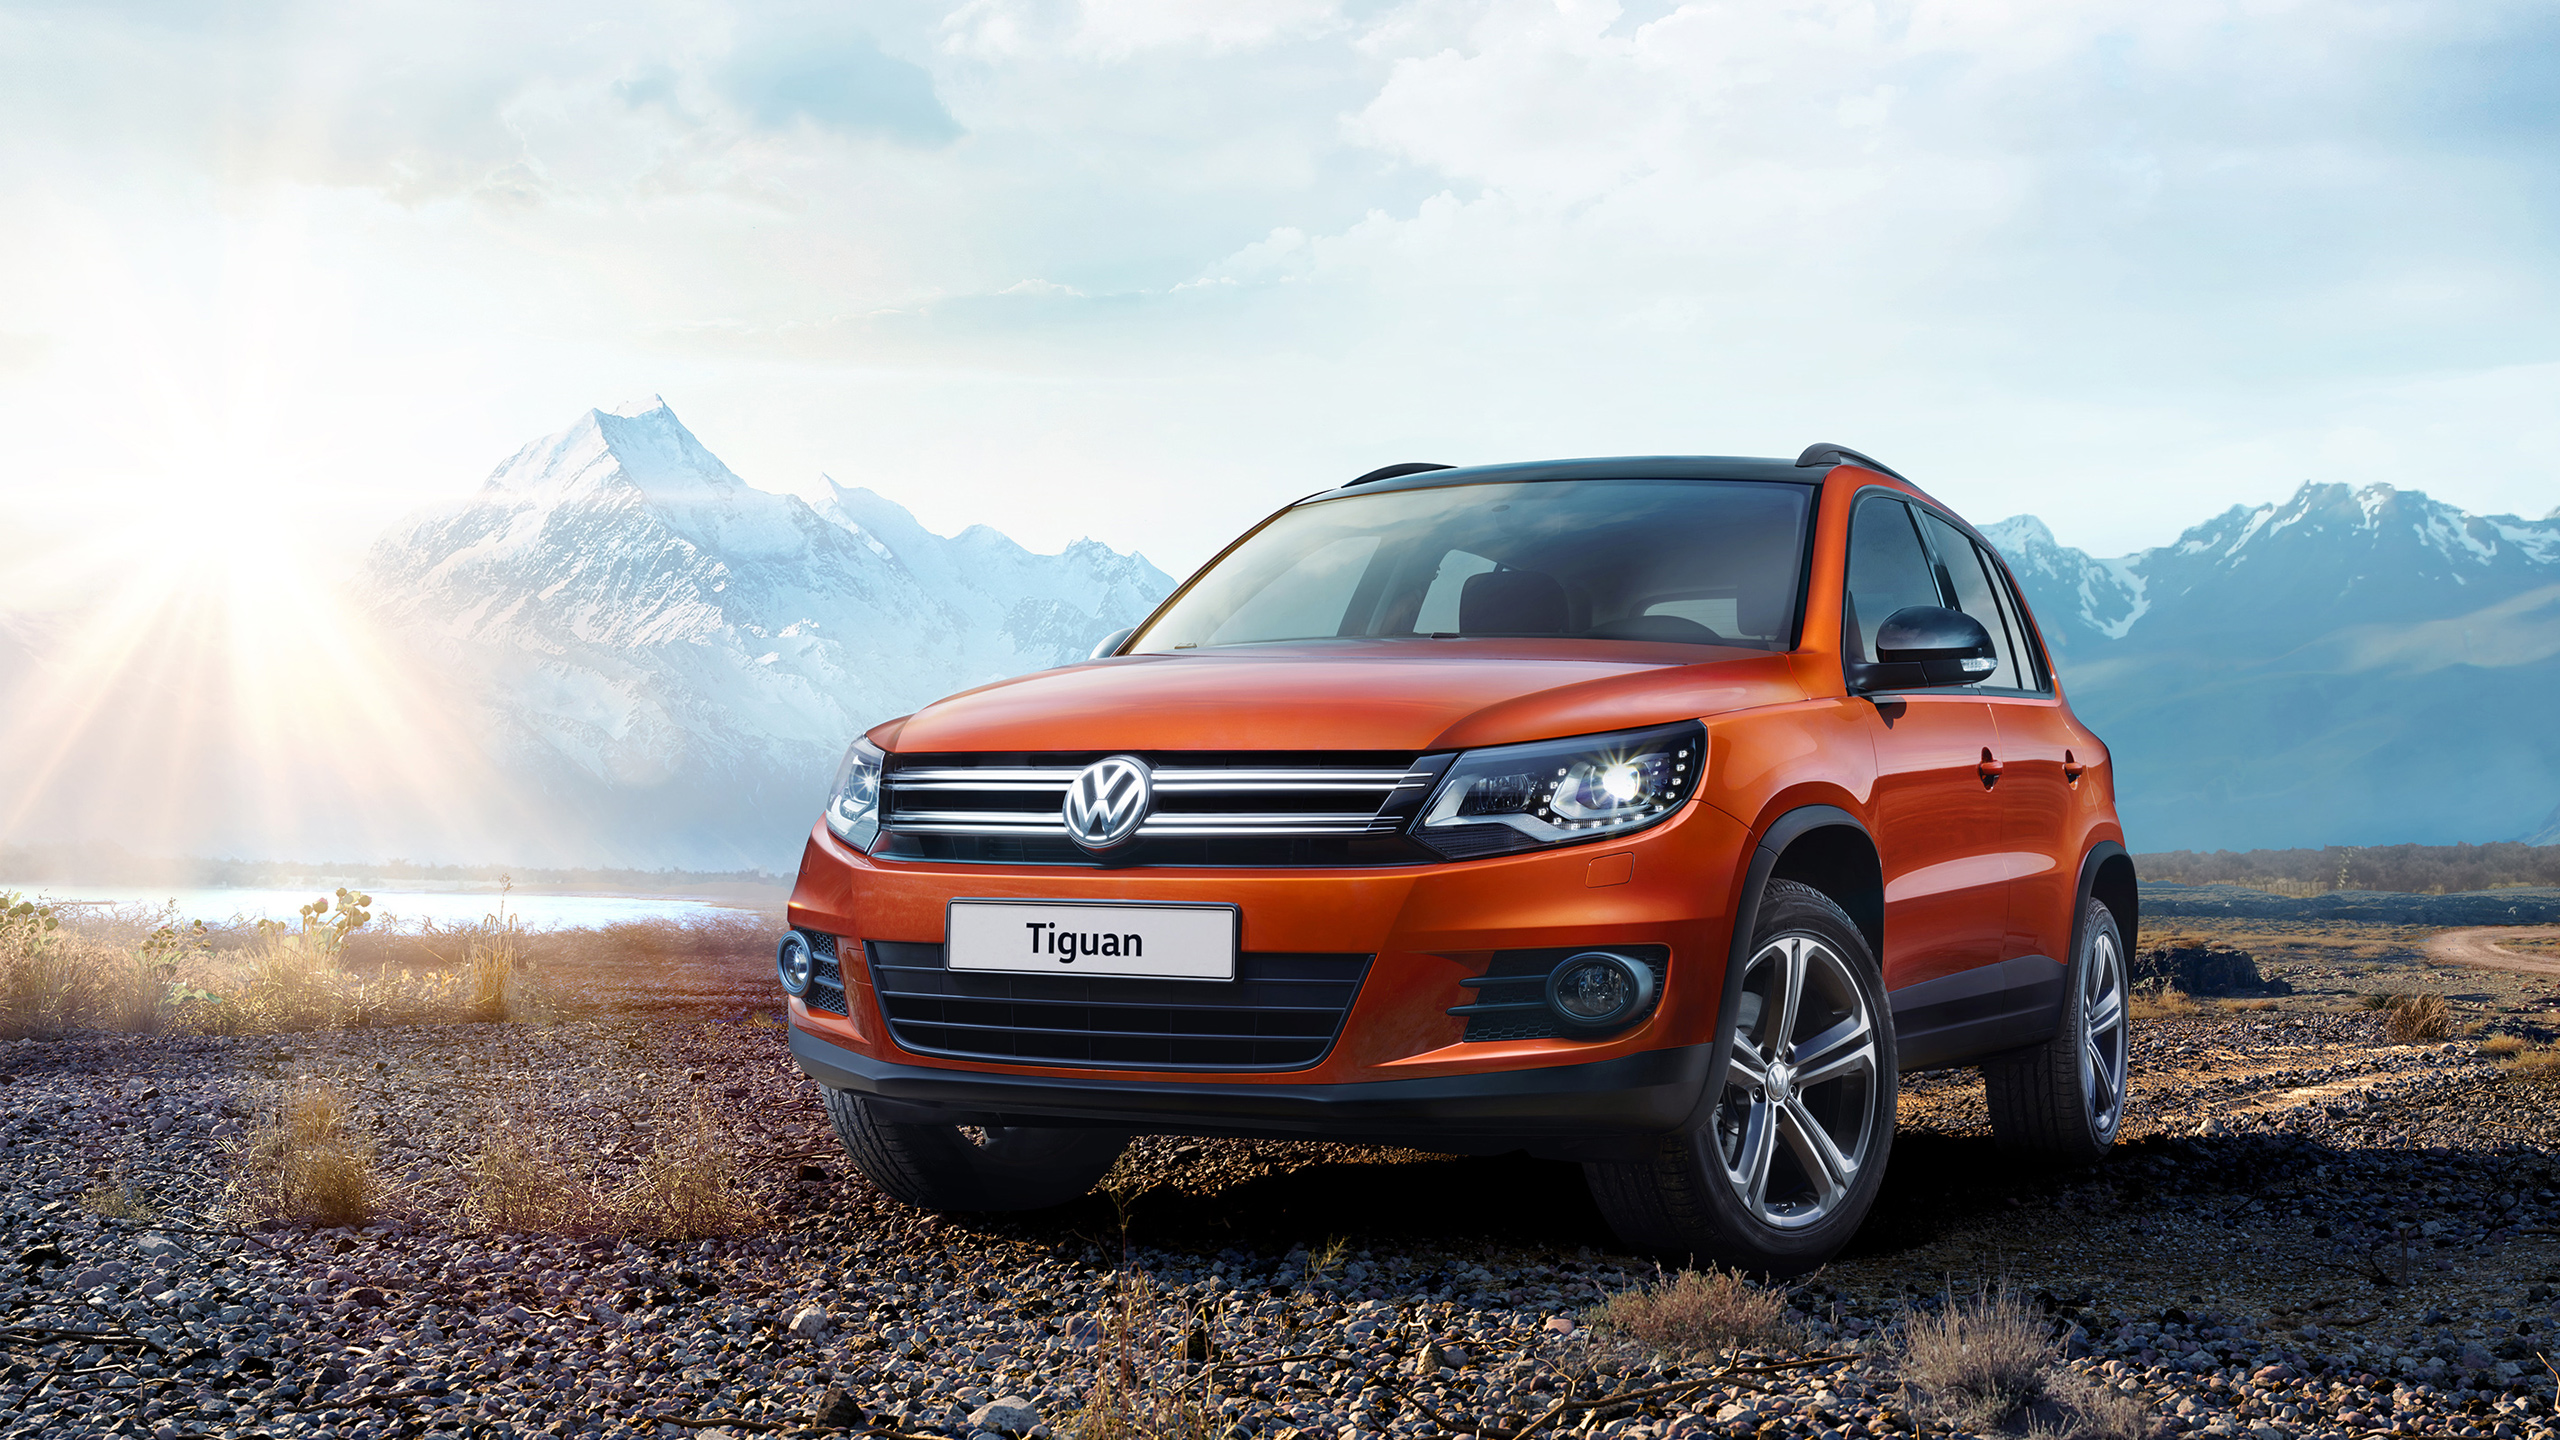 2016 volkswagen tiguan suv wallpaper hd car wallpapers. Black Bedroom Furniture Sets. Home Design Ideas